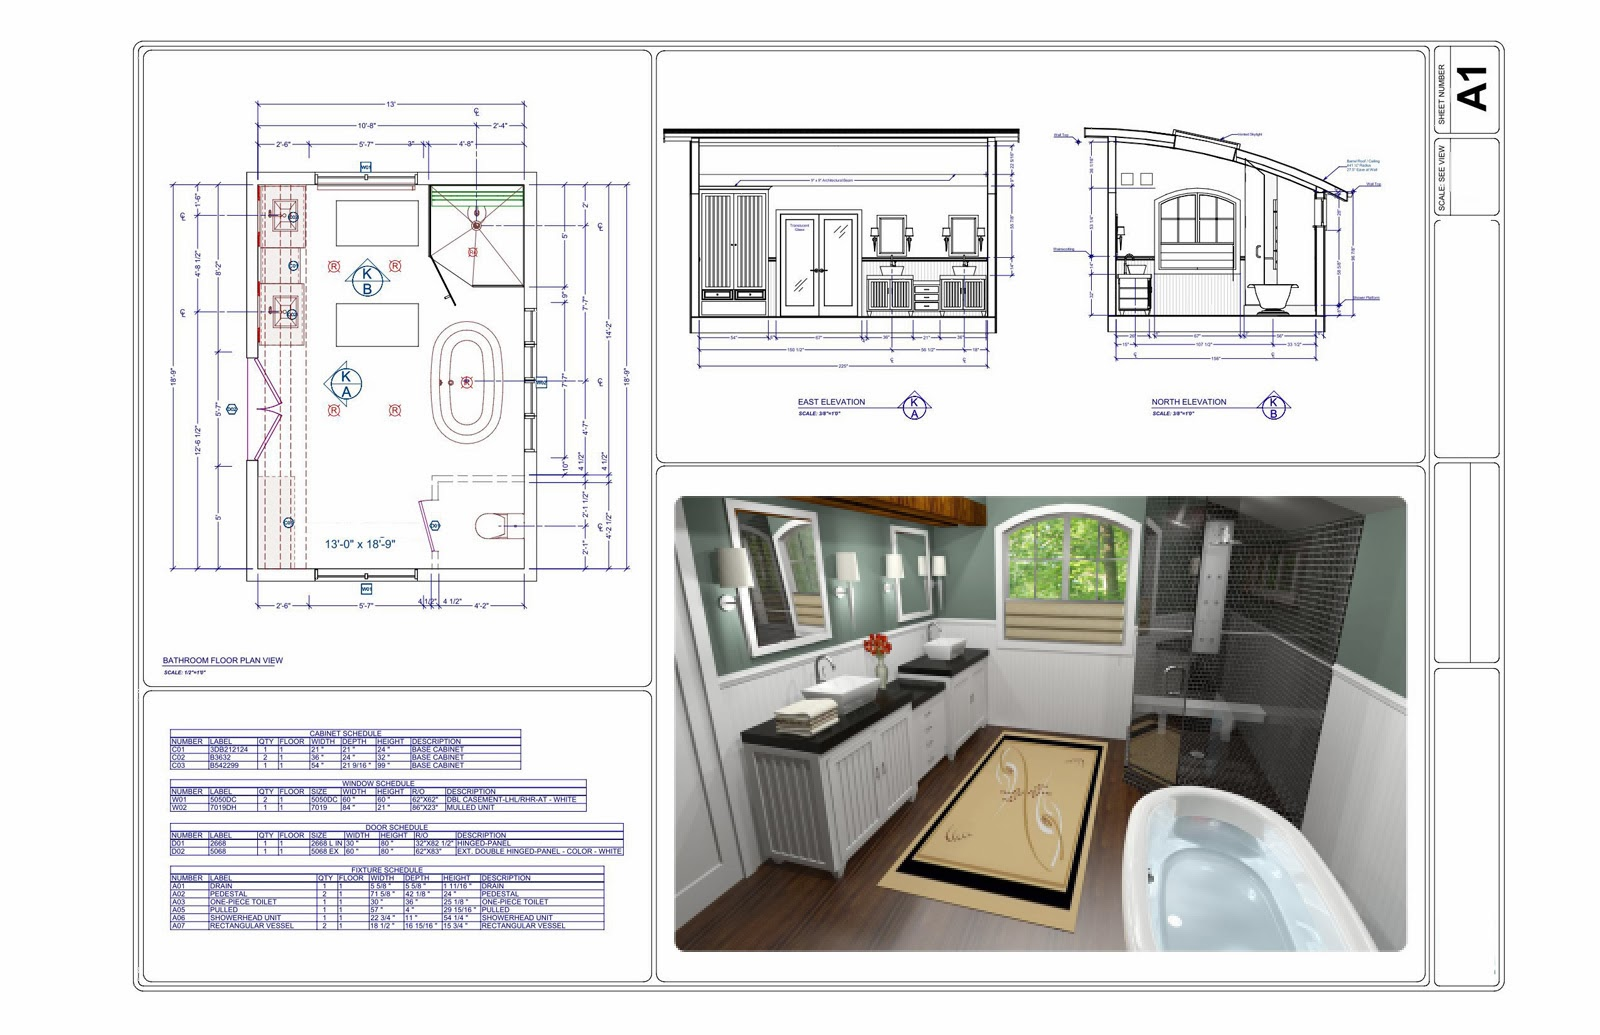 Cad kitchen design software Kitcad kitchen design software